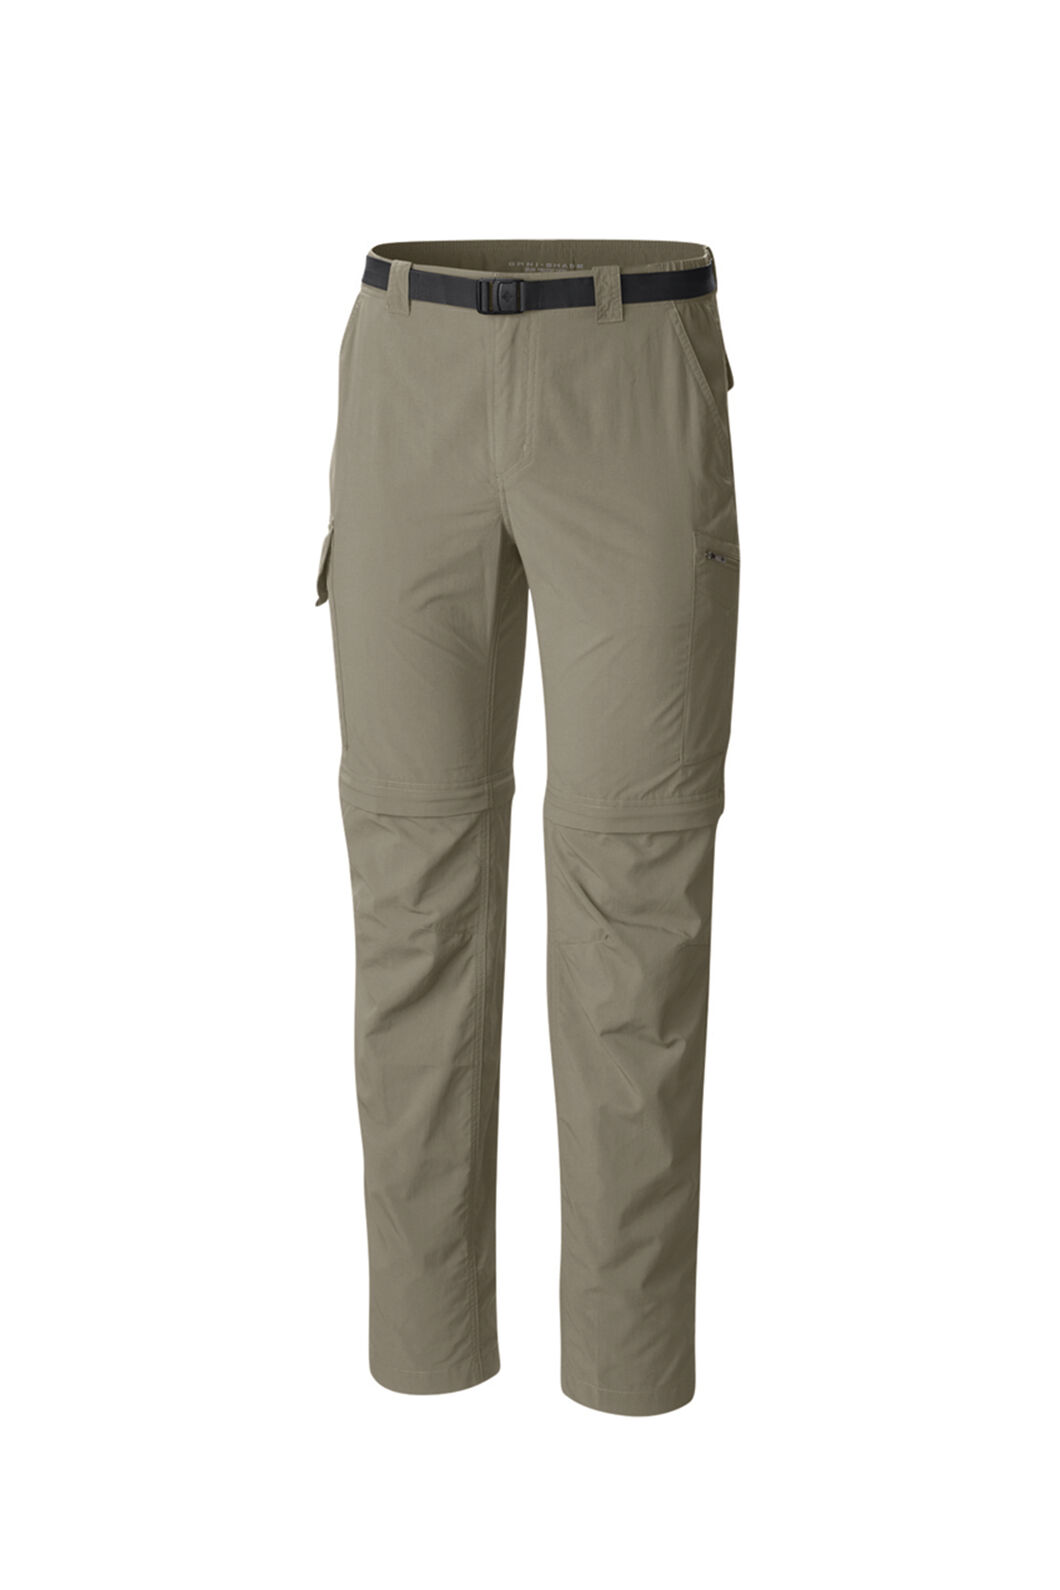 Columbia Men's  Ridge Convertible Pants Tusk, TUSK, hi-res